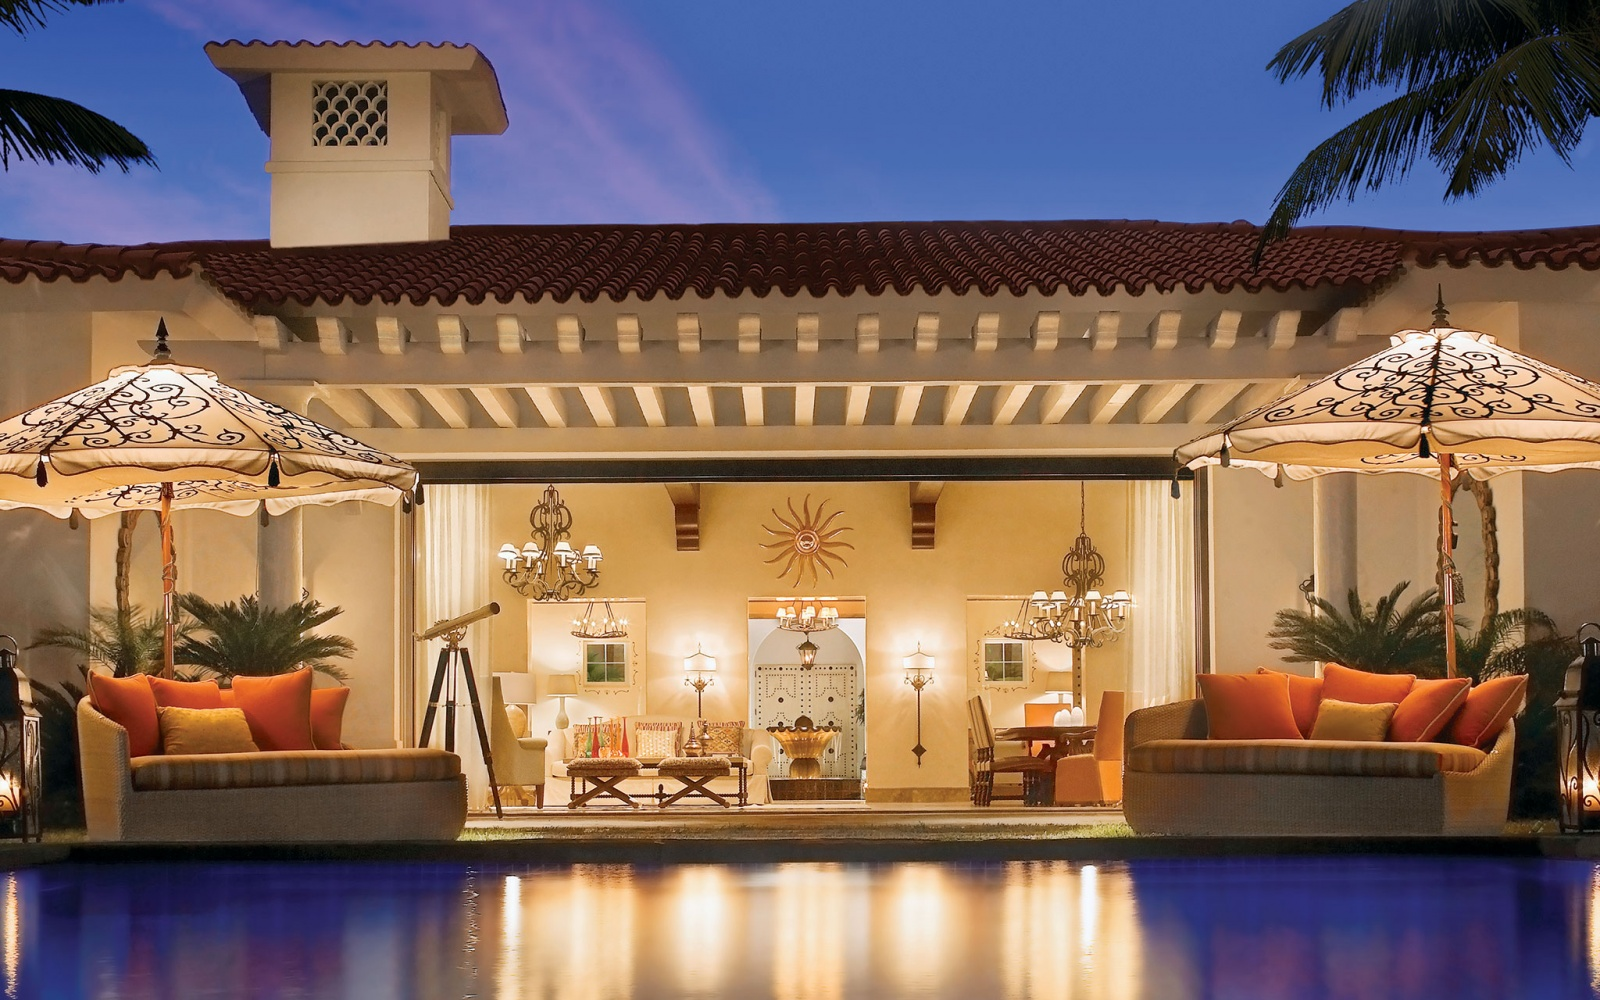 201501-w-worlds-most-romantic-hotels-one-and-only-palmilla